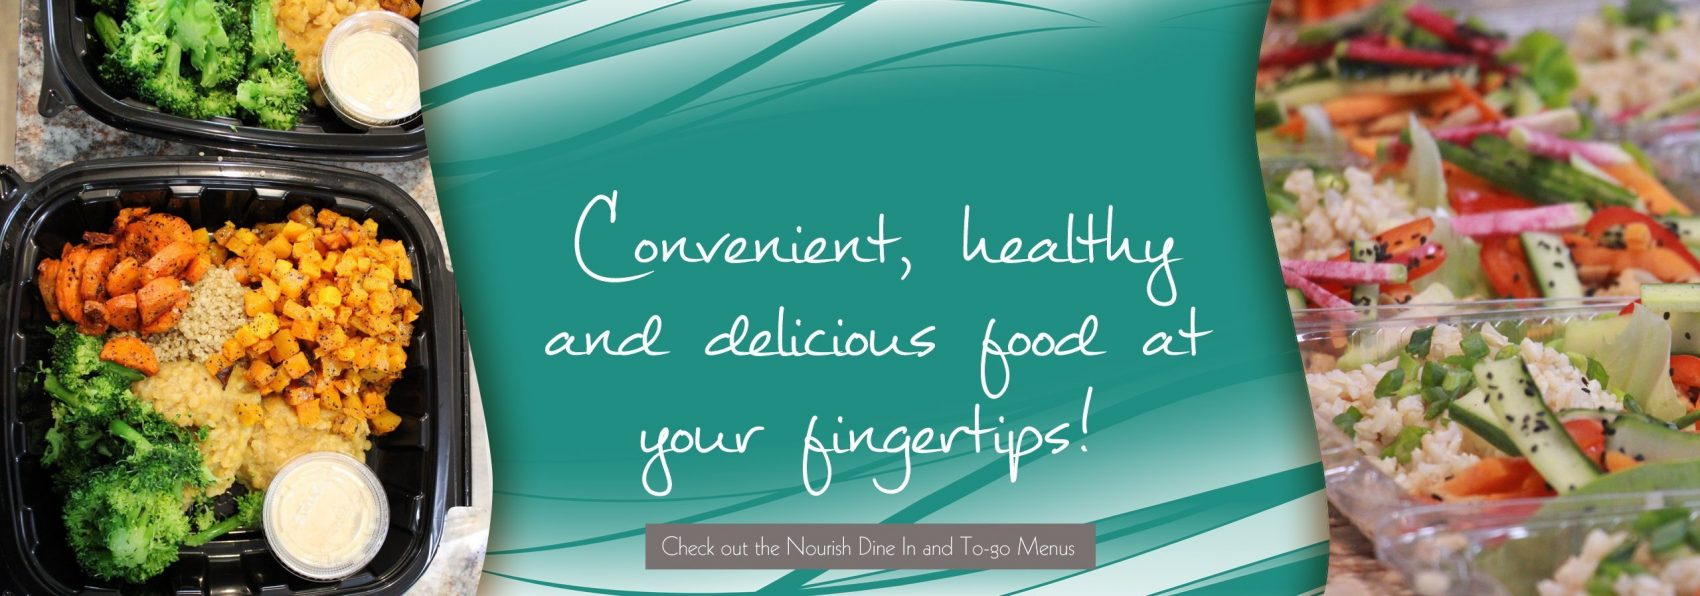 Convenient, healthy and delicious food at your fingertips!